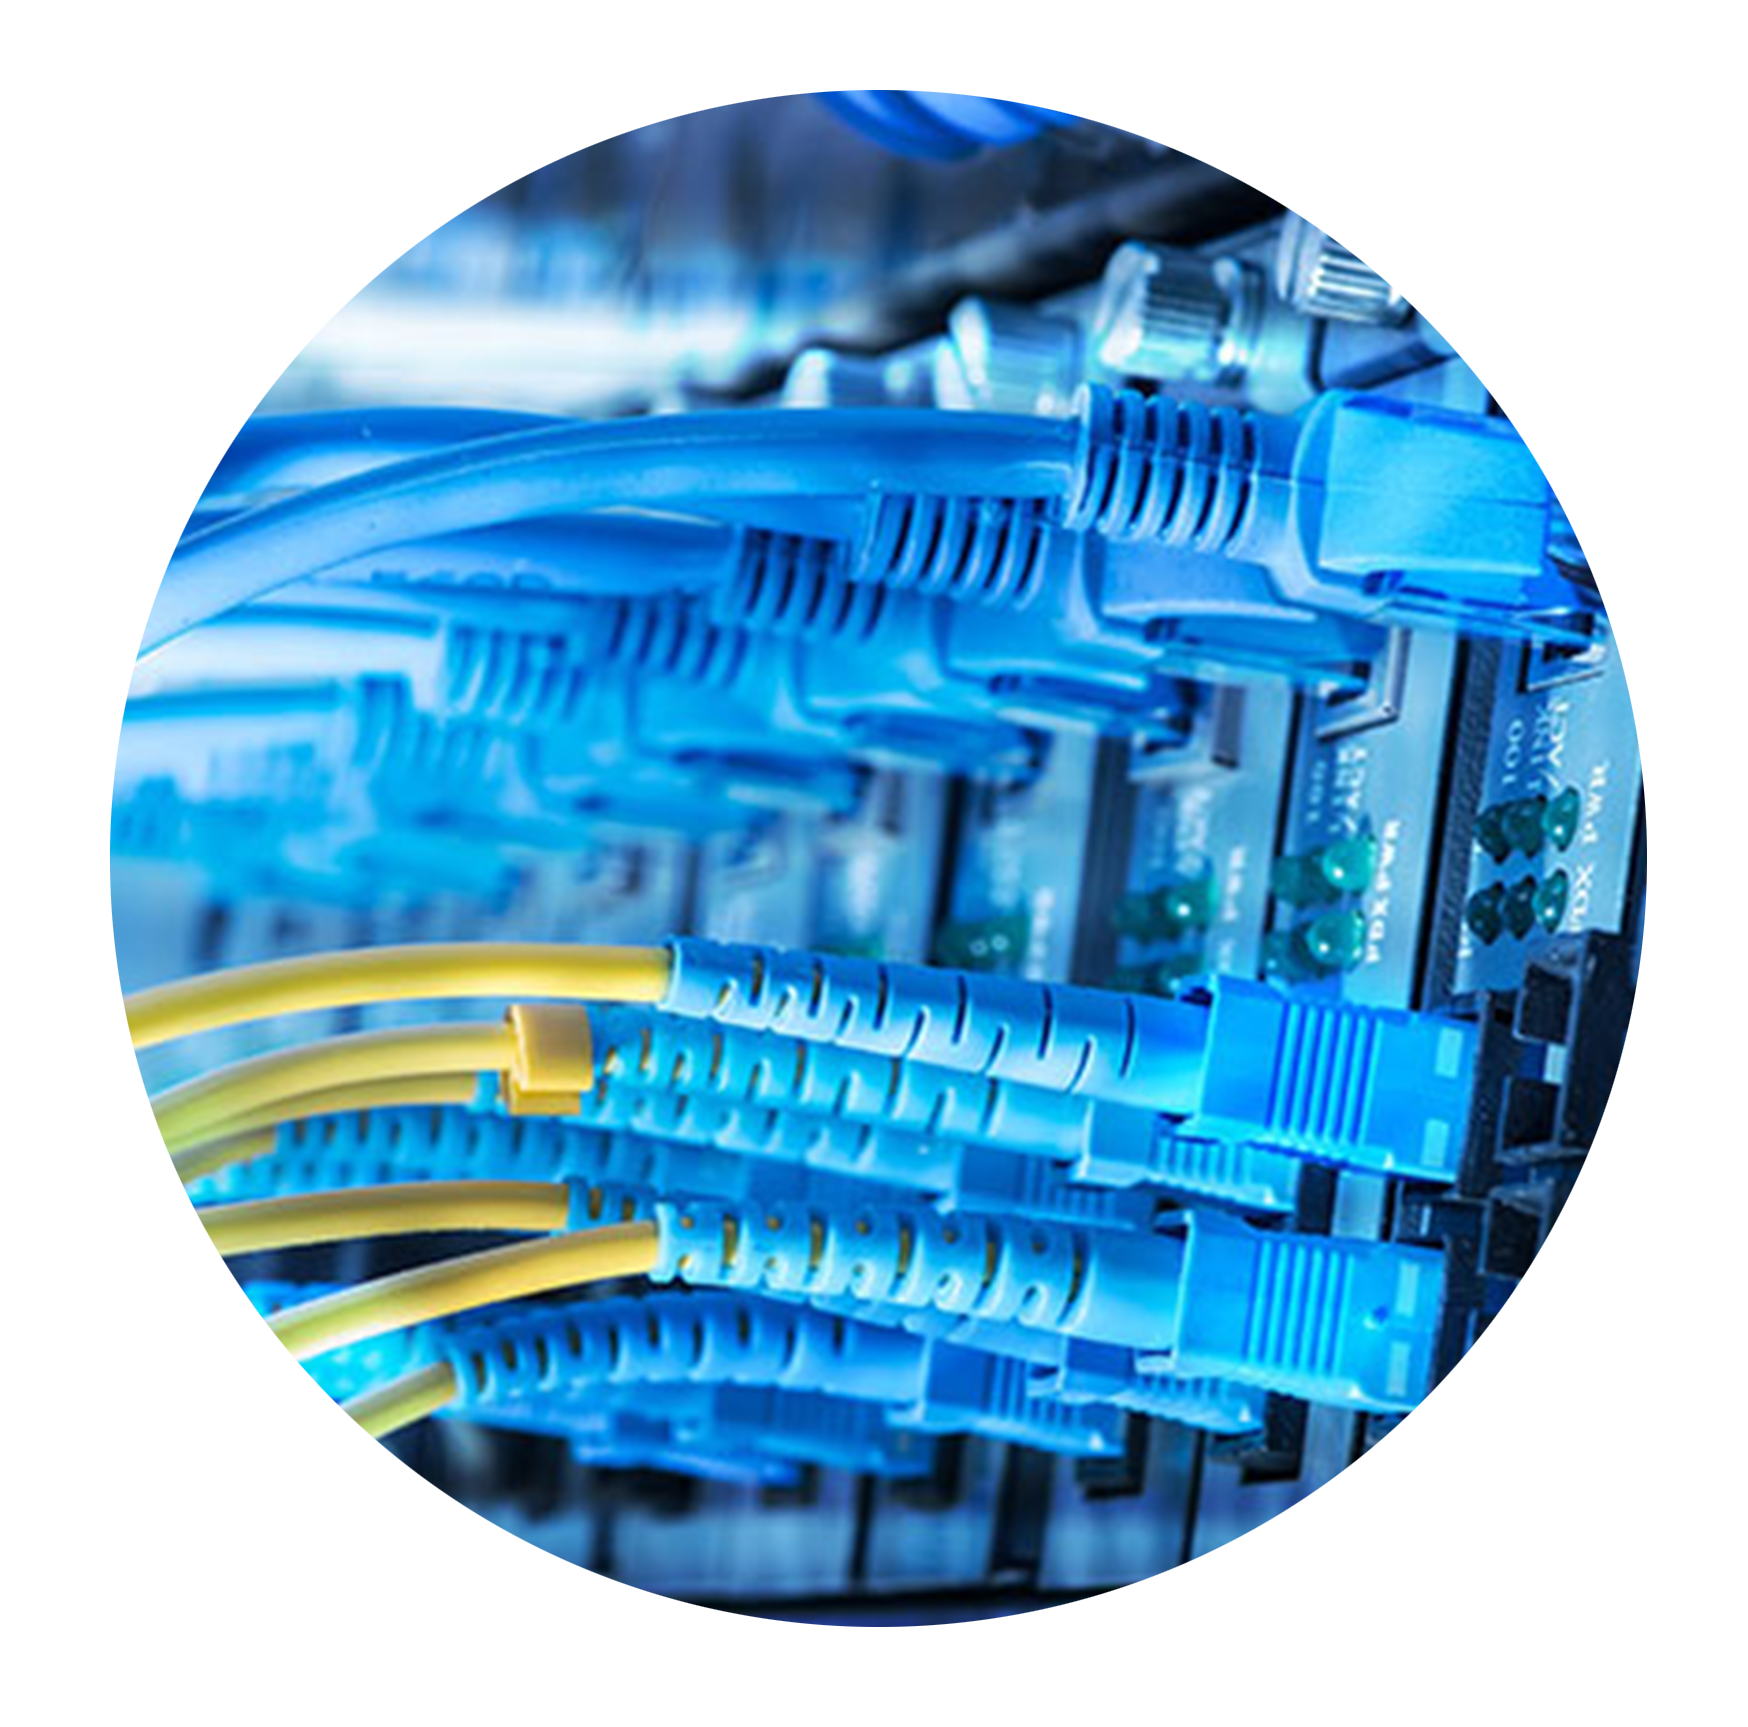 WHAT WE OFFER - We can offer a full point to point design, install, test, commission and a 25-year manufacture warranty from Connectix on any wired system up to and including Cat7 including cabinet and patch panel dressing.